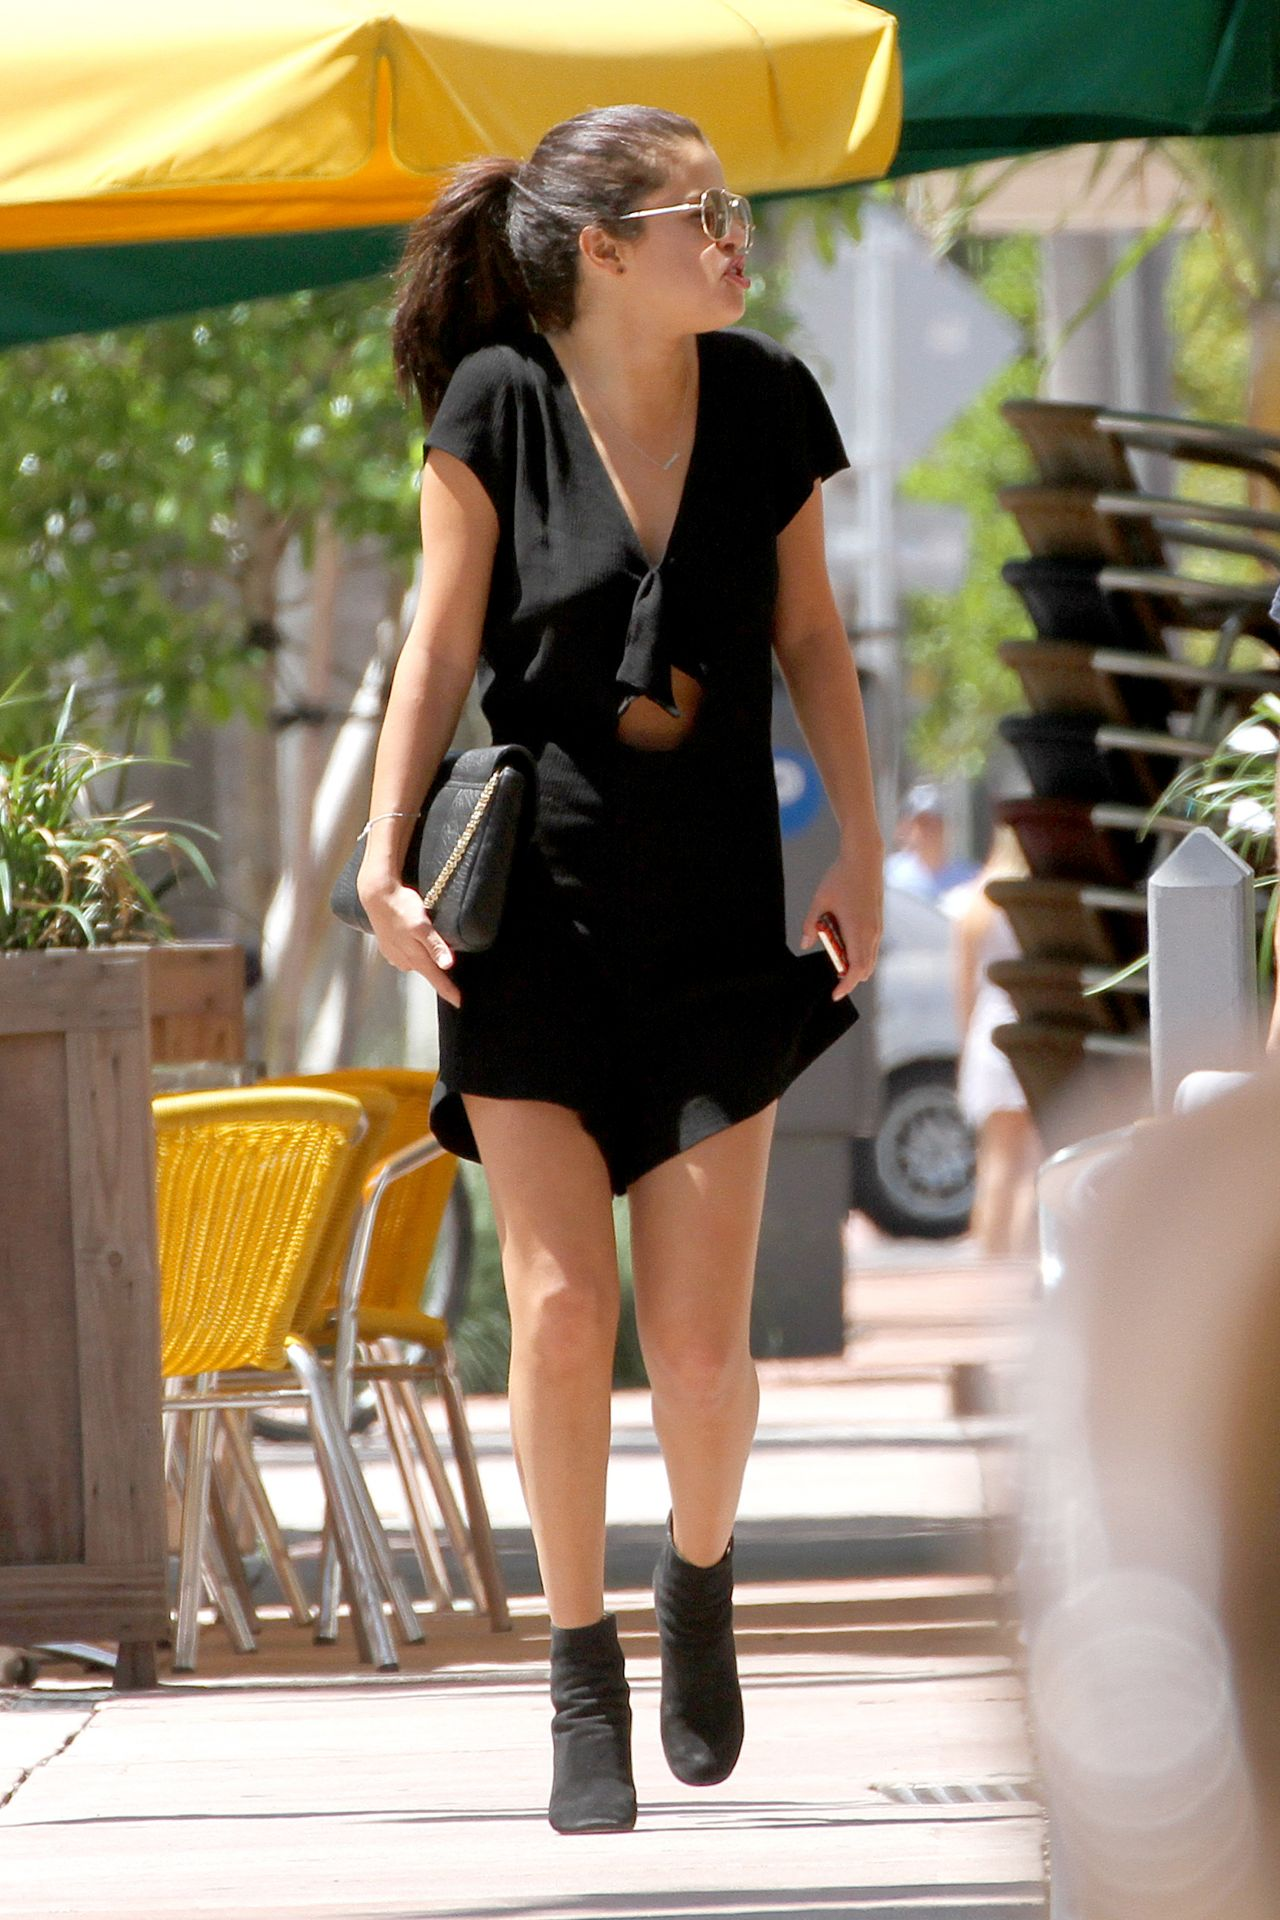 Selena Gomez Takes Her Legs Out in Miami  July 2014